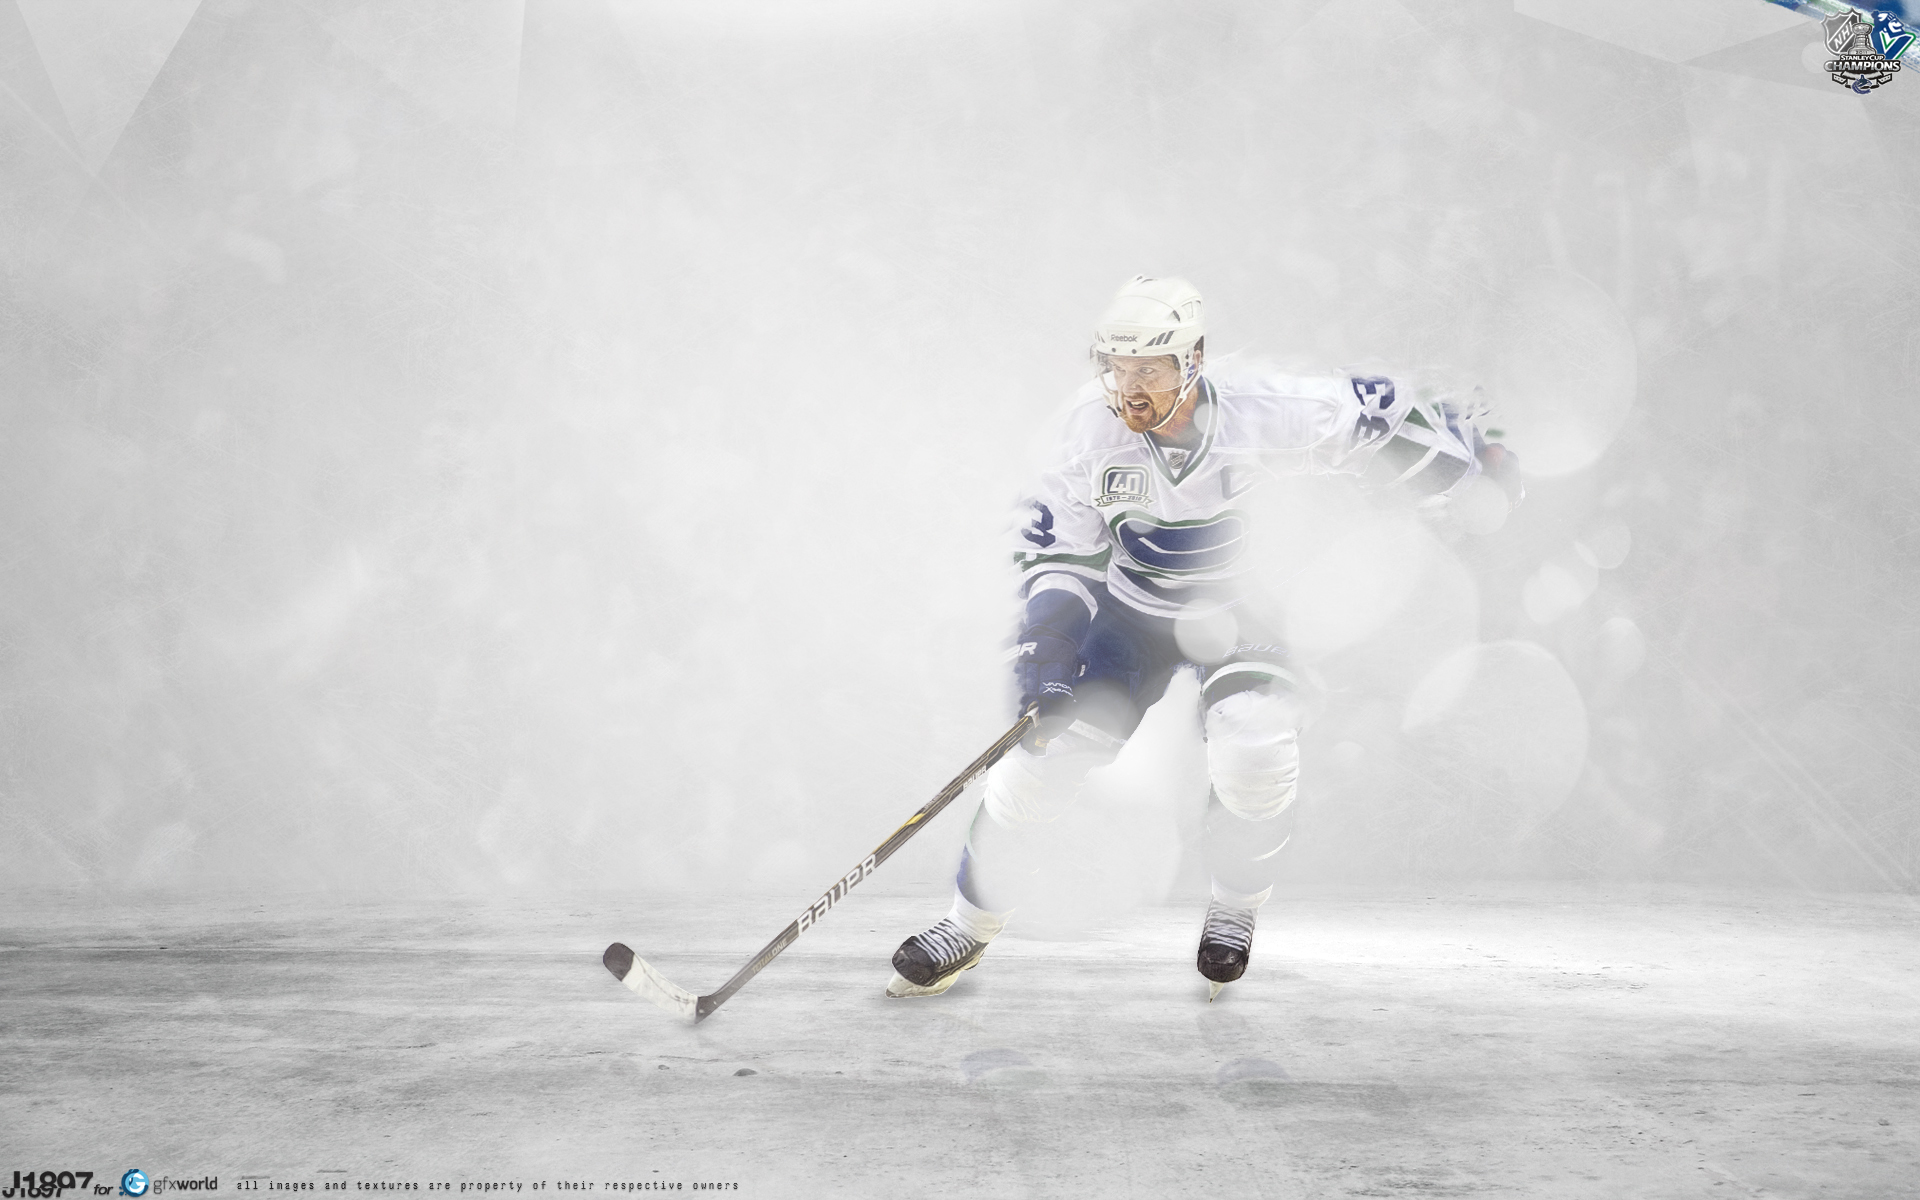 Hockey player Henrik Sedin on ice wallpapers and images   wallpapers 1920x1200